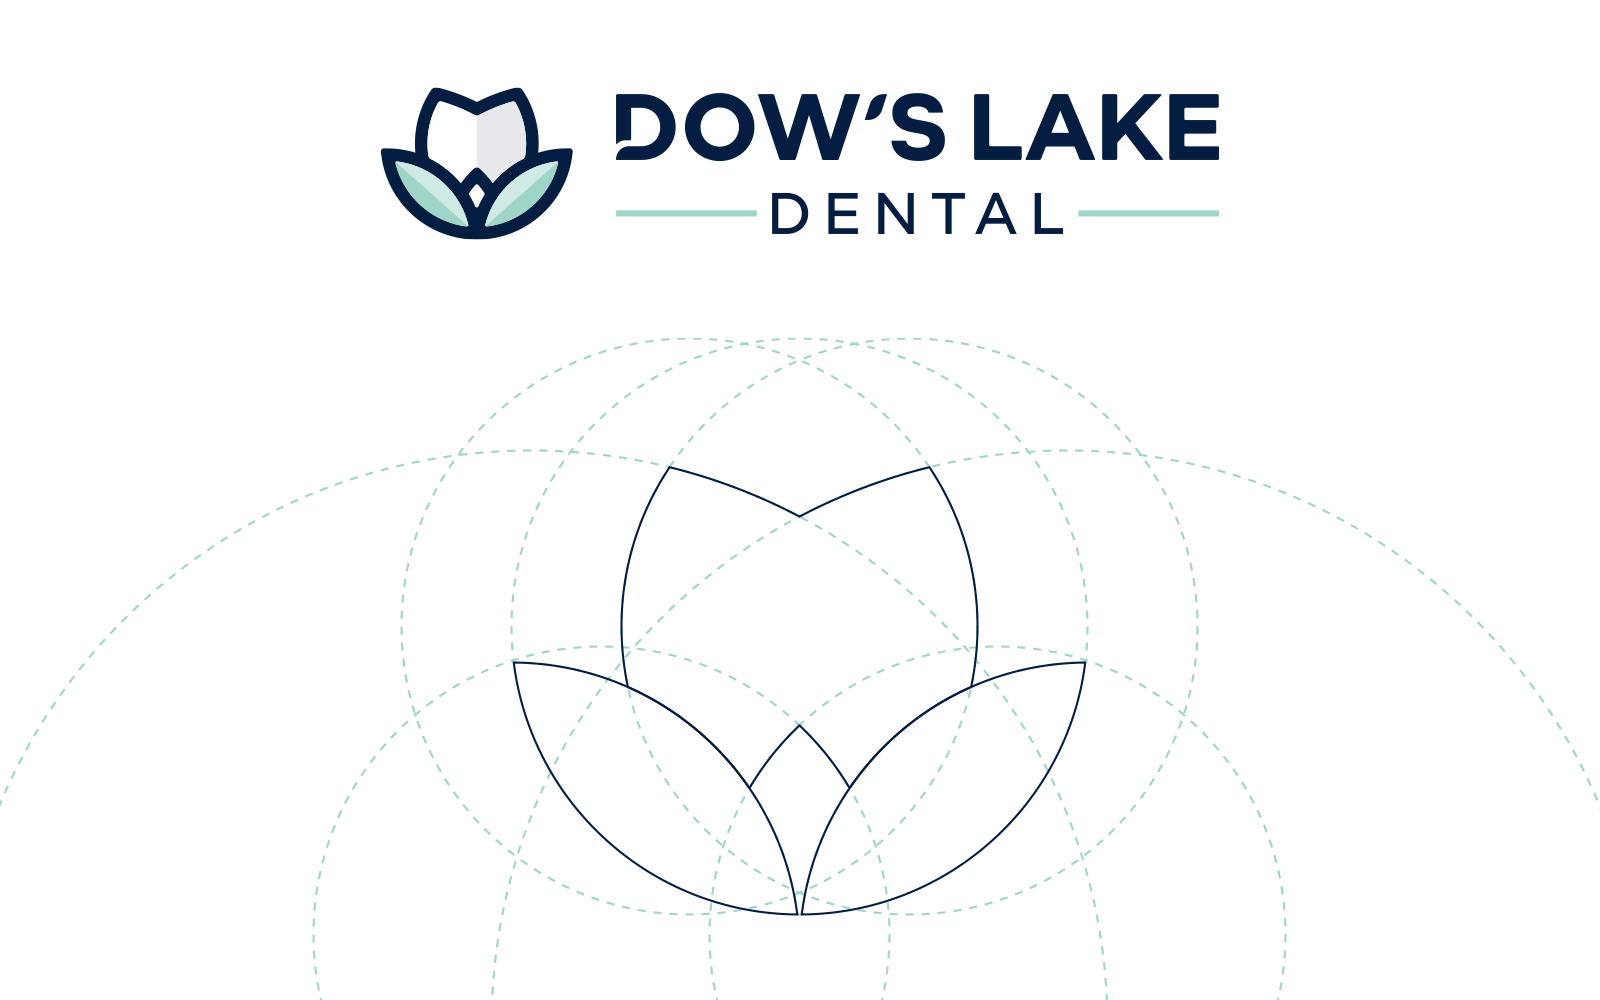 Dow's Lake Dental - Logo Design Formation